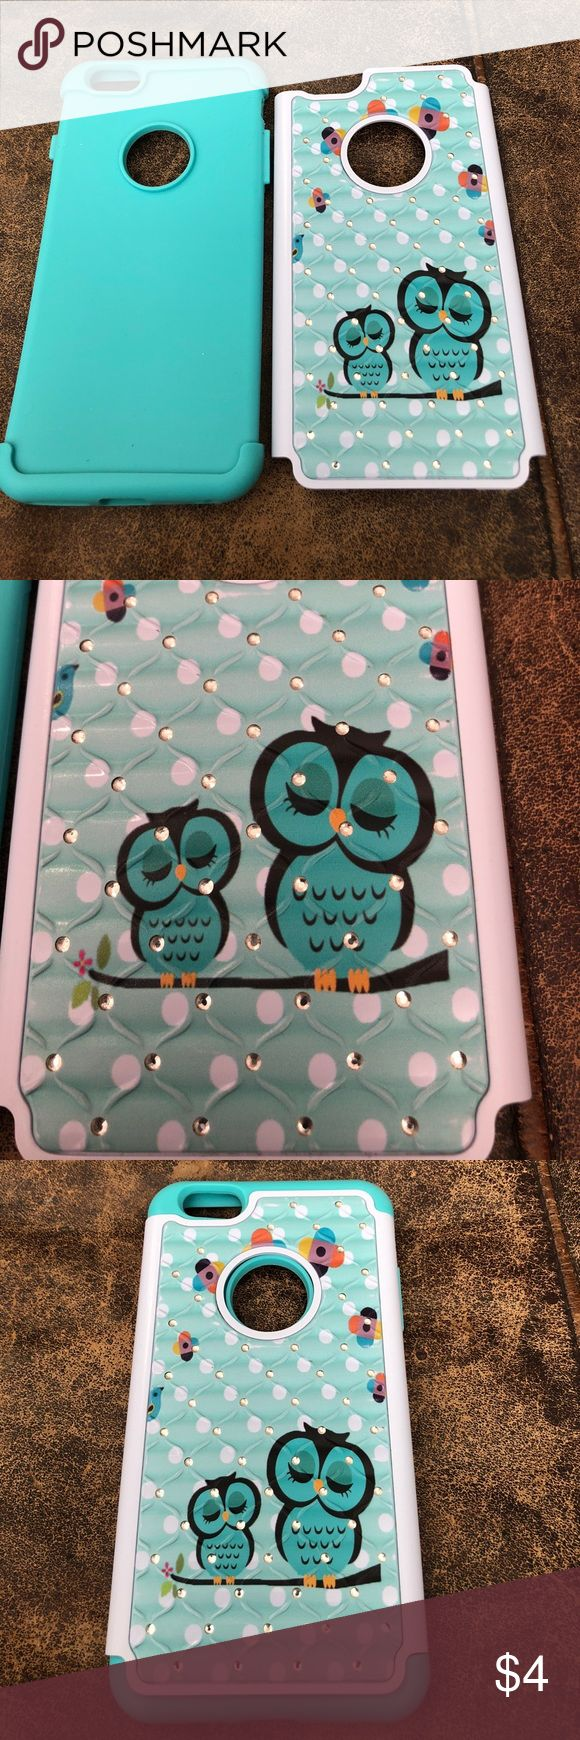 iPhone 6s Plus Phone Case Magic Sky iPhone 6s Plus owl Phone Case. Gently used. Upgraded phone, selling all my cases! Magic Sky Accessories Phone Cases